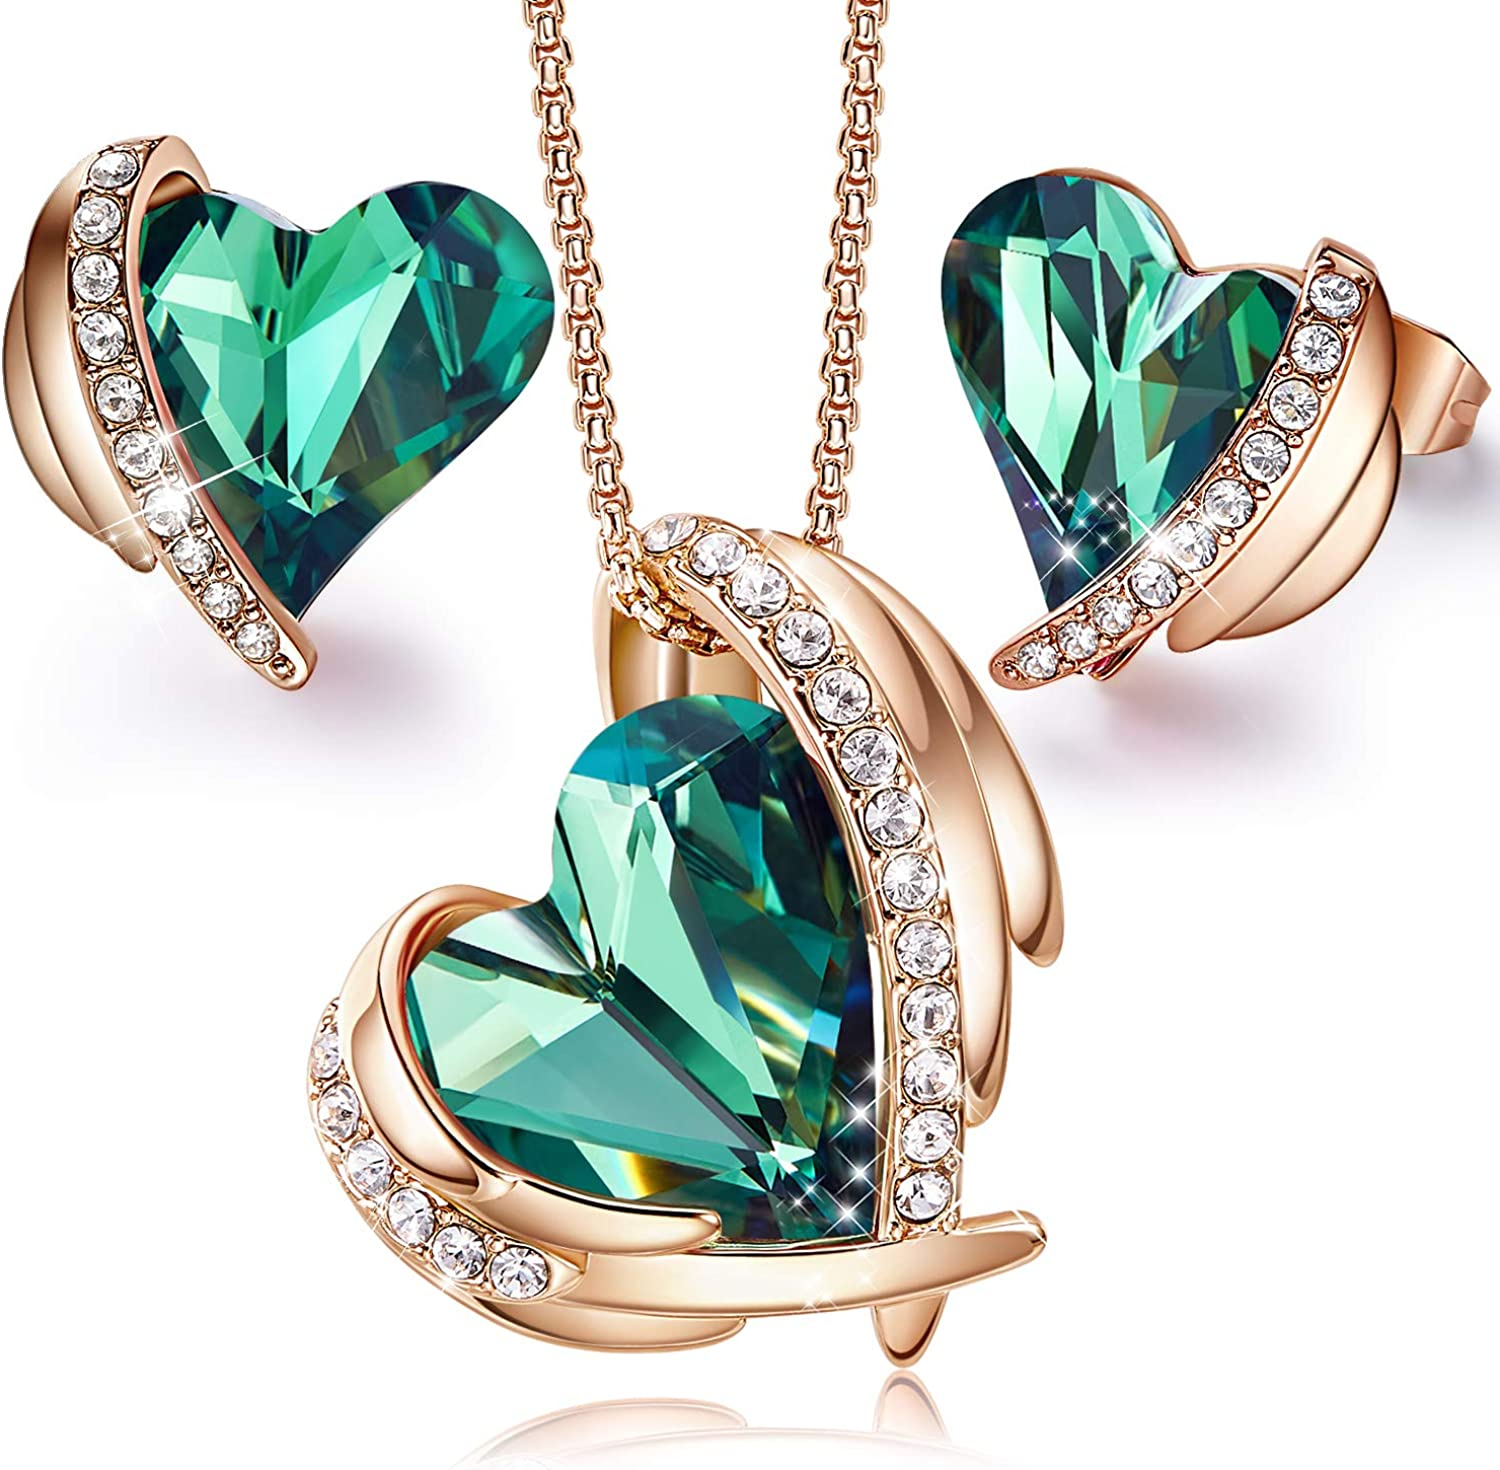 CDE Love Heart Necklaces and Earrings Jewelry Set for Women Rose Gold/Sliver Tone Crystals Birthstone Mother's Day Jewelry Gifts for Women Wife Party/Anniversary/Birthday